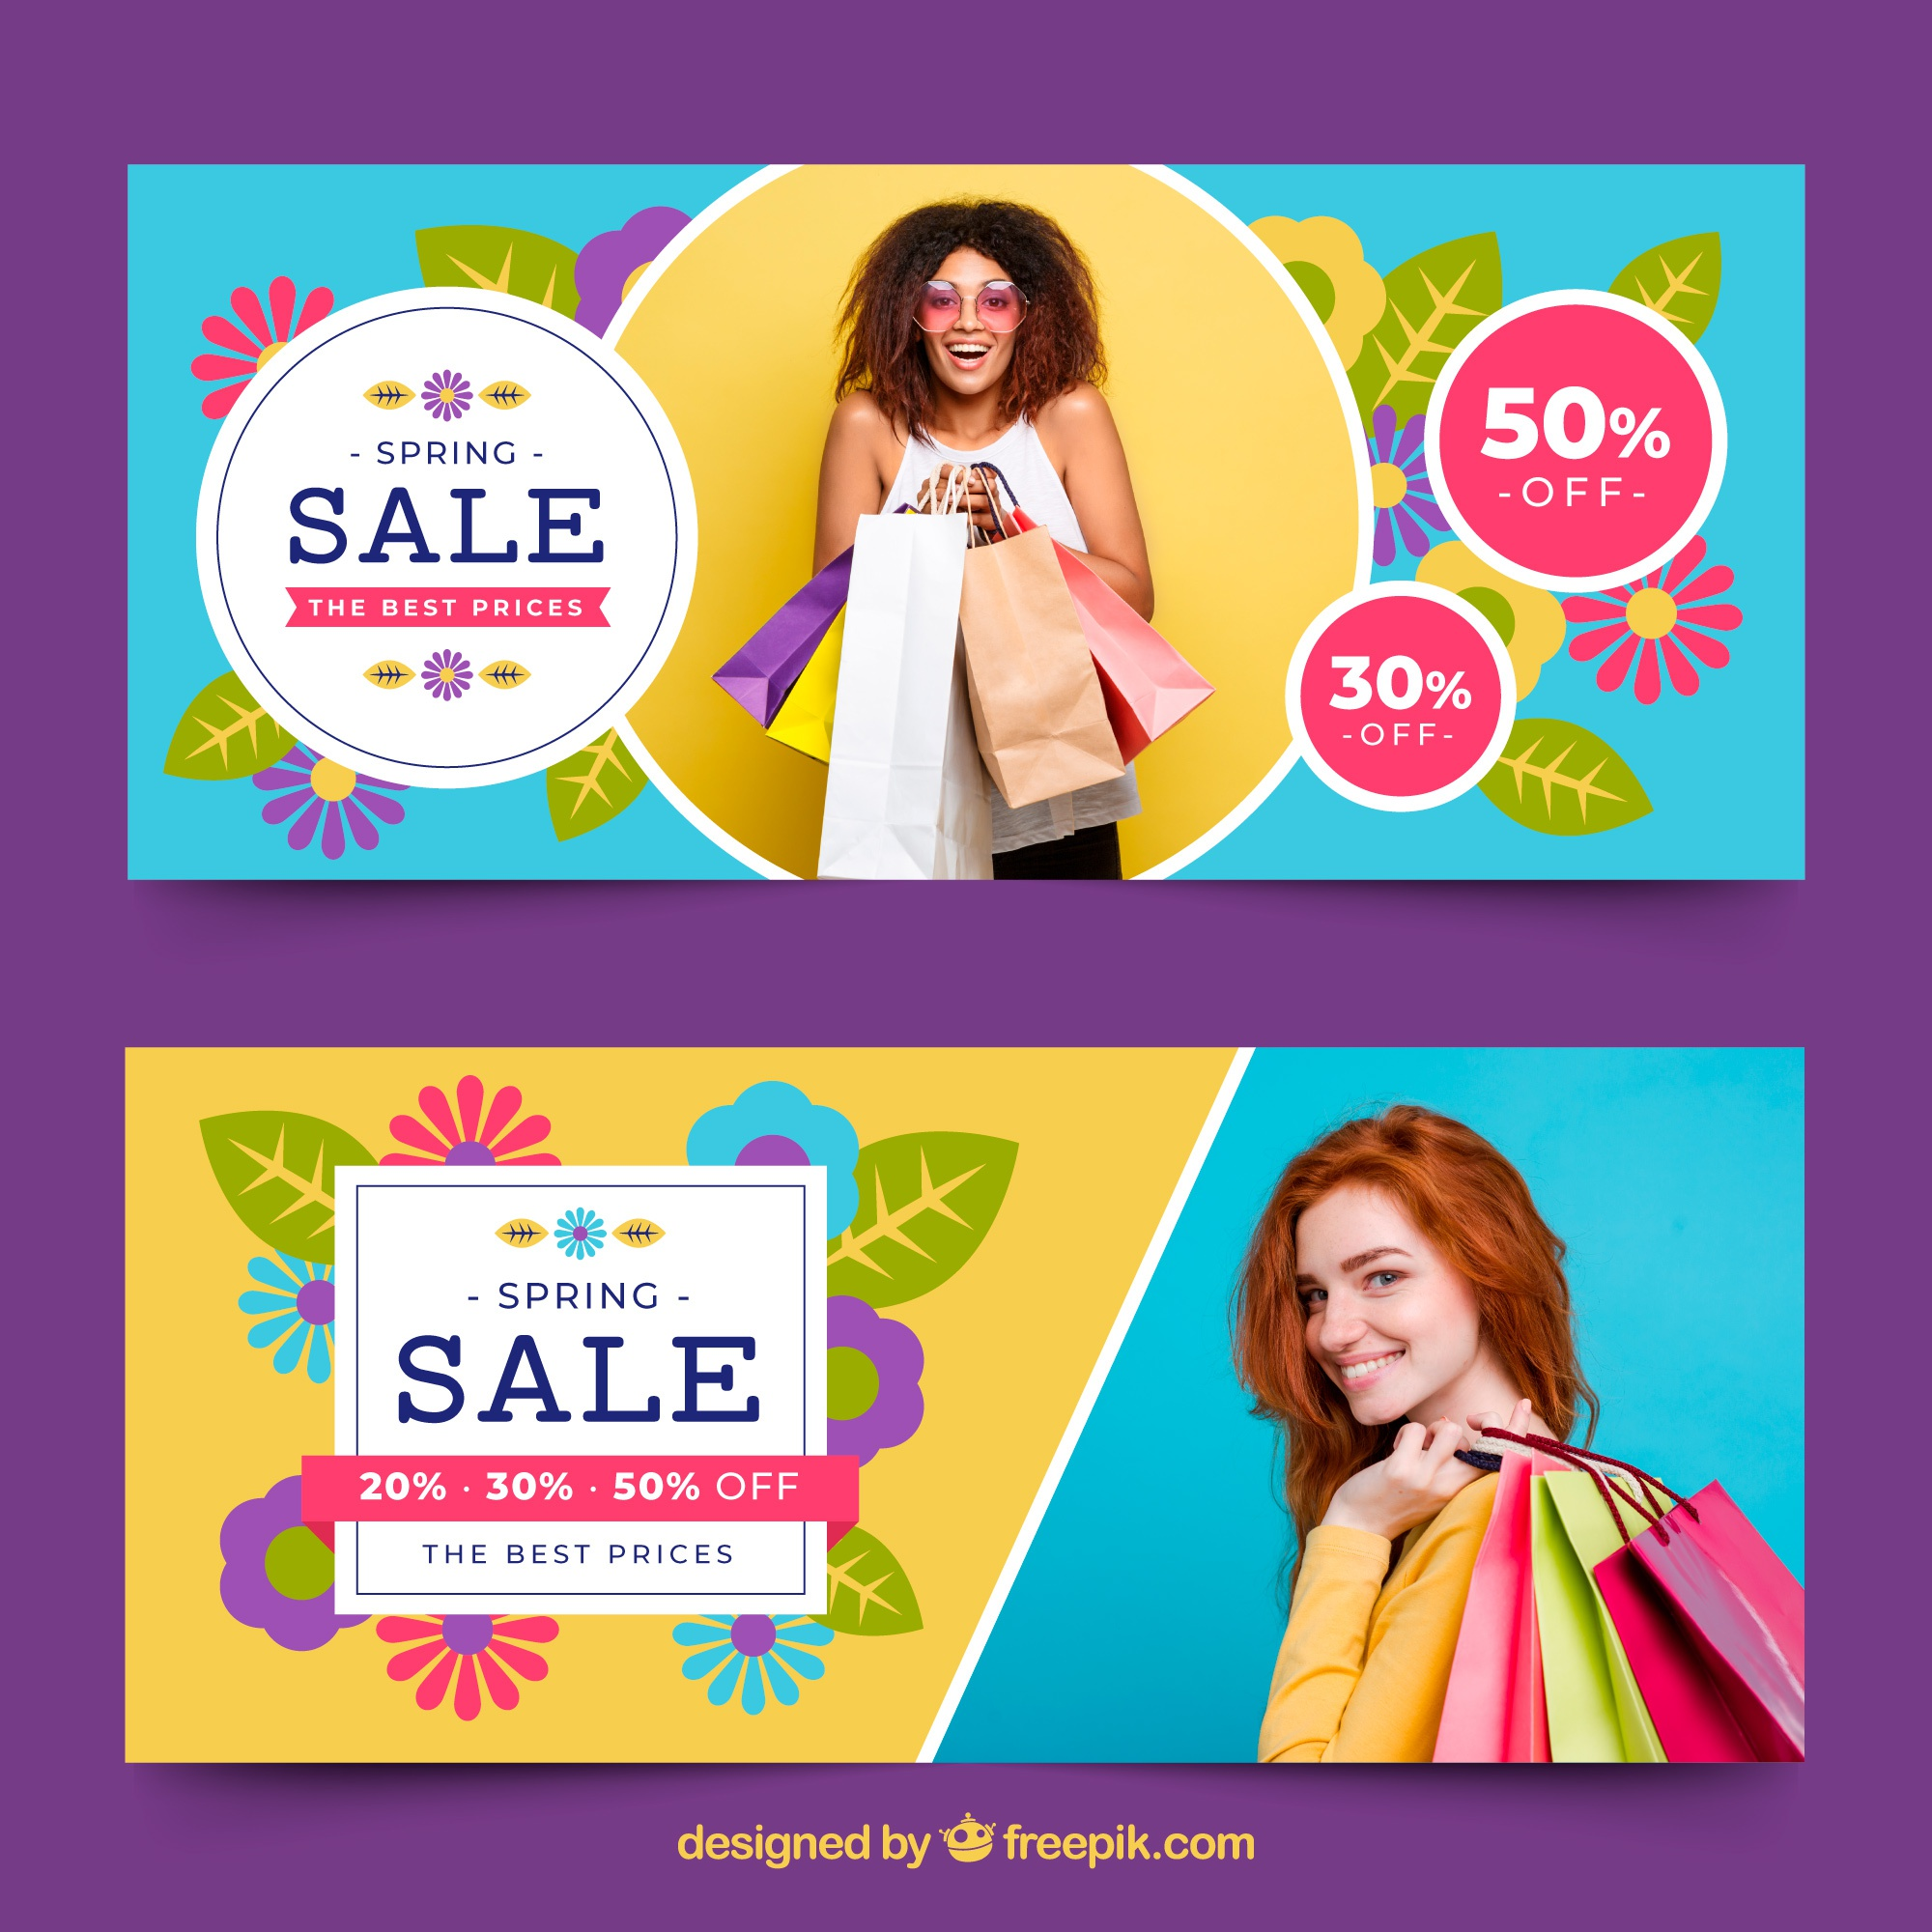 Spring sale banners with photo of woman